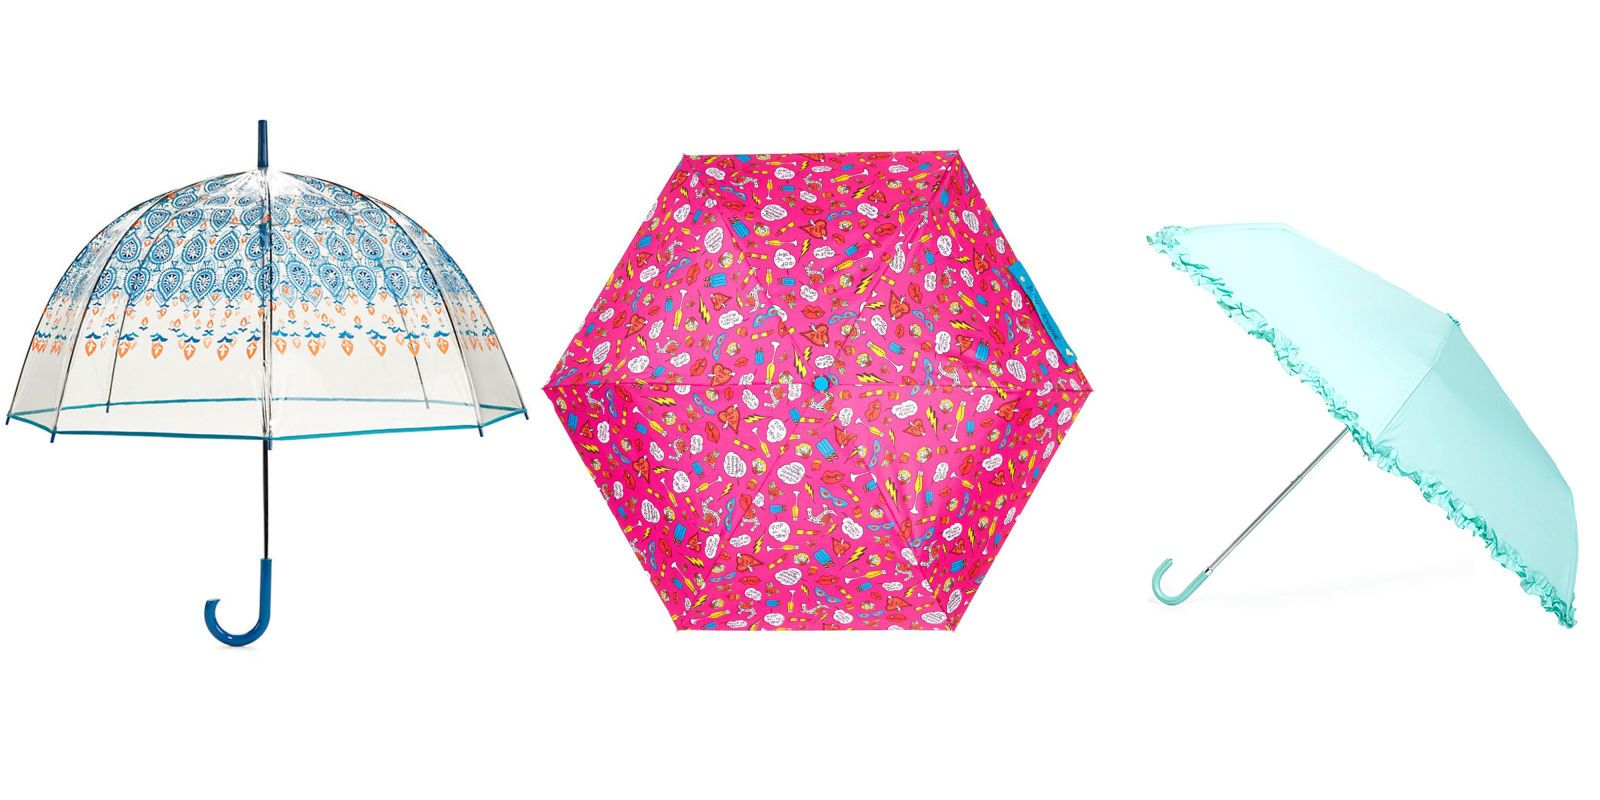 10 Super-Cute Umbrellas That Will Have You Singing in the Rain